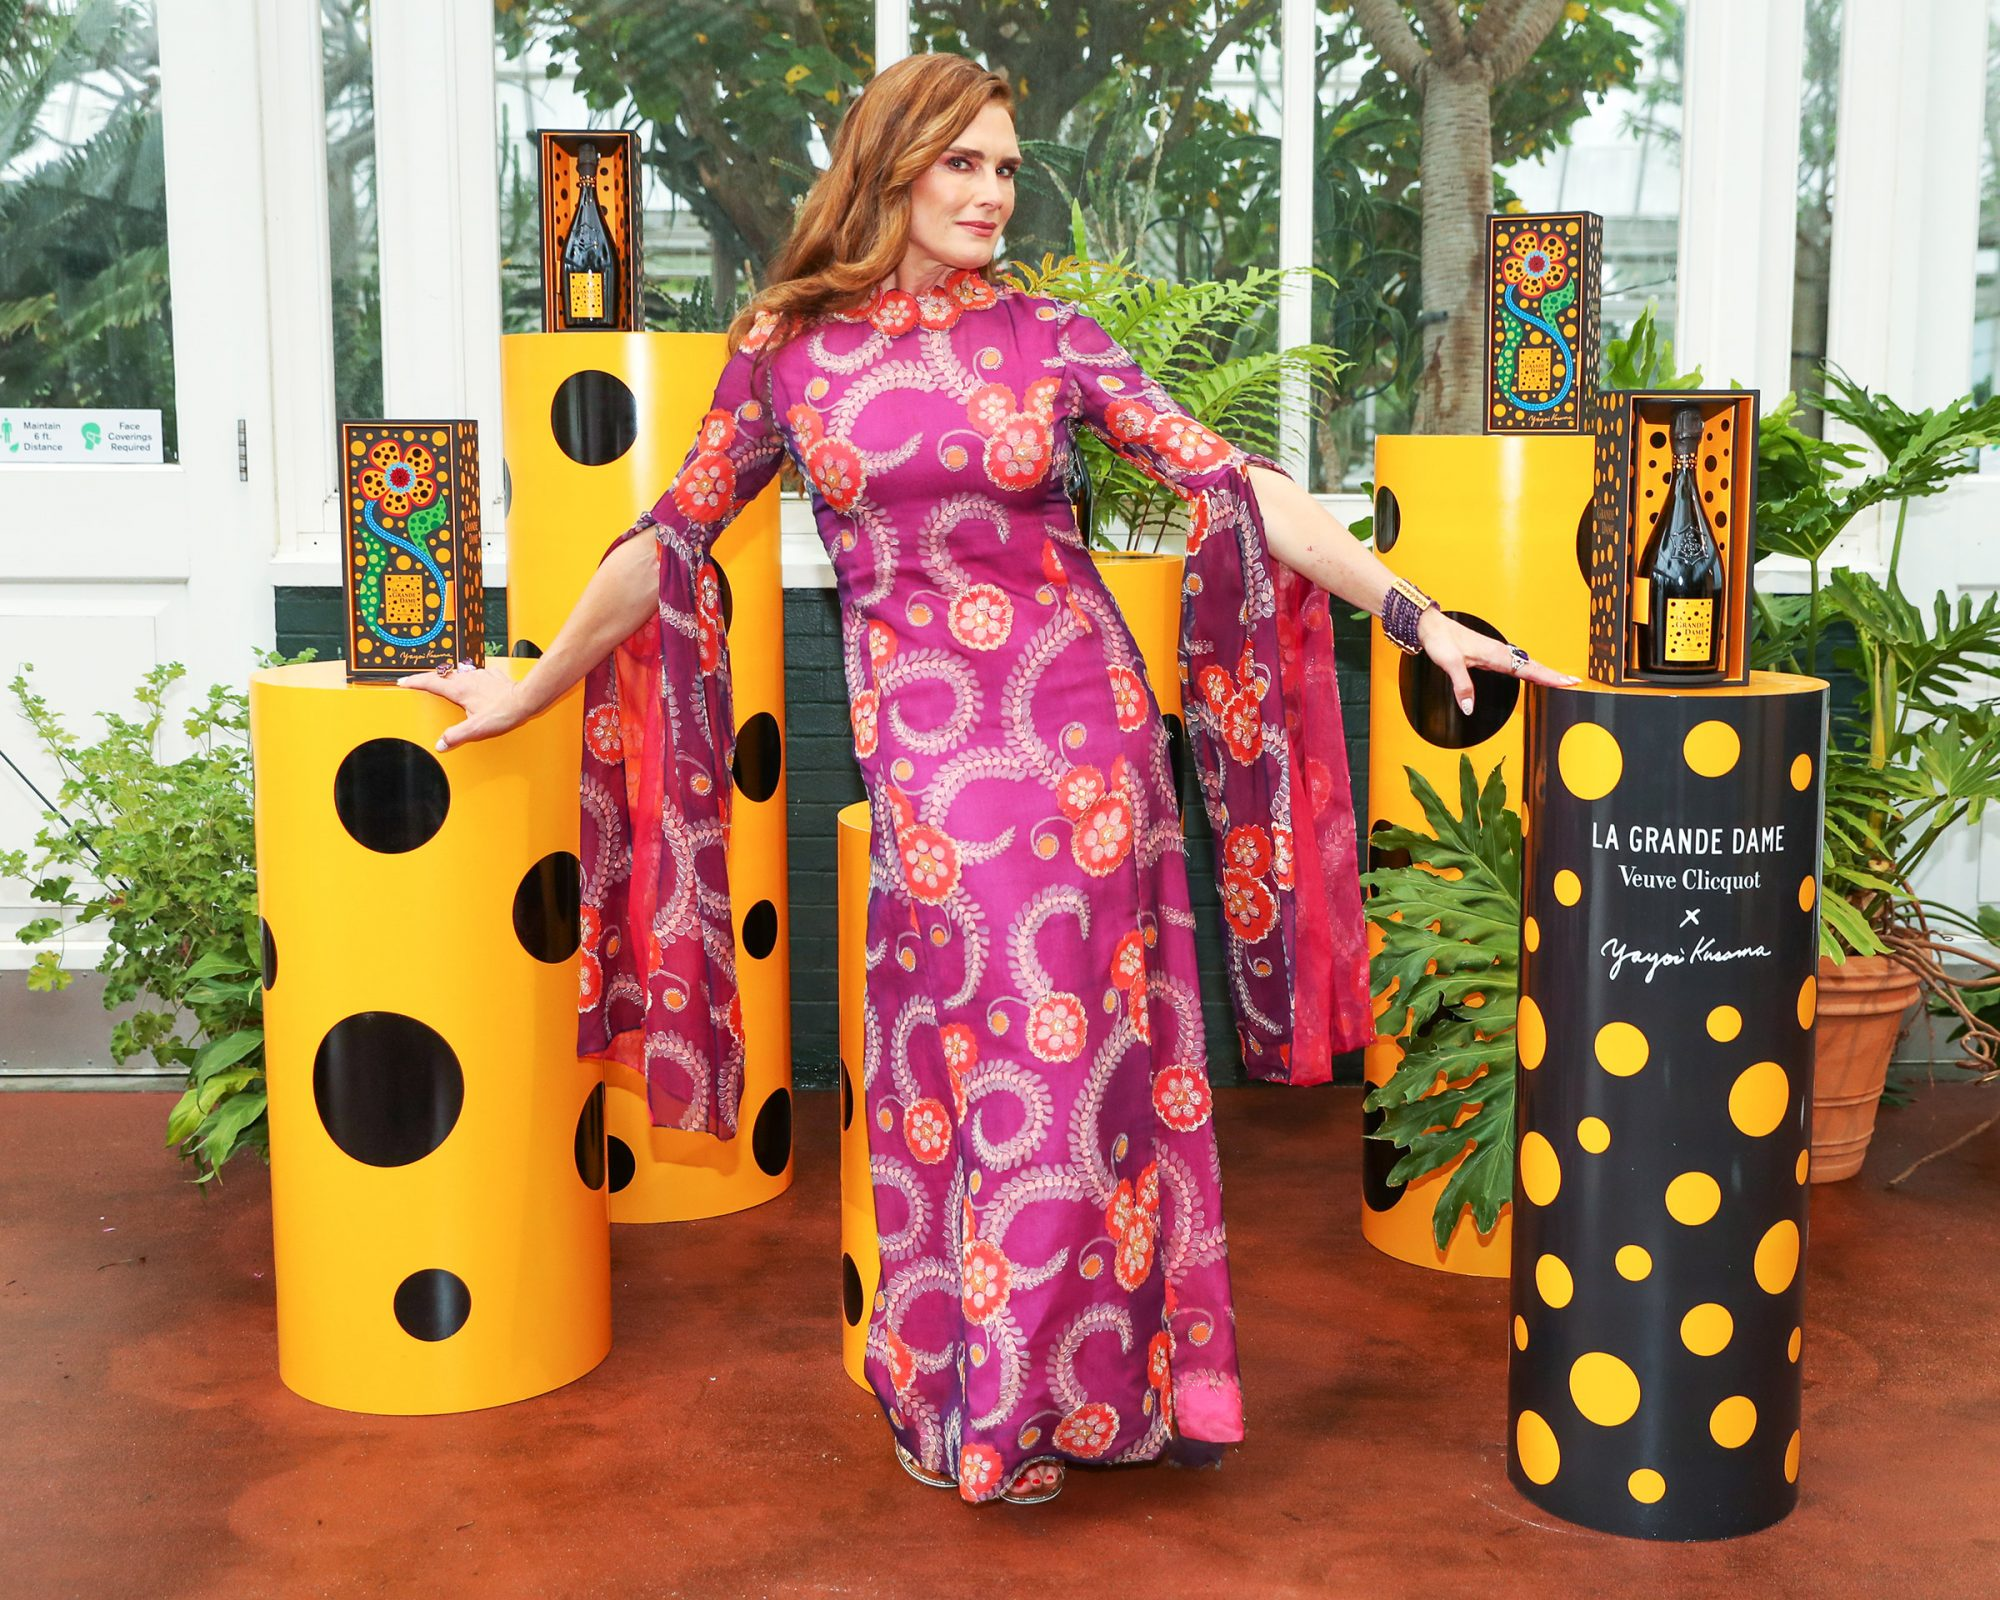 Brooke Shields attends the New York Botanical Garden Gala + Veuve Clicquot Cocktail Hour at the New York Botanical Garden, NYC on June 3, 2021